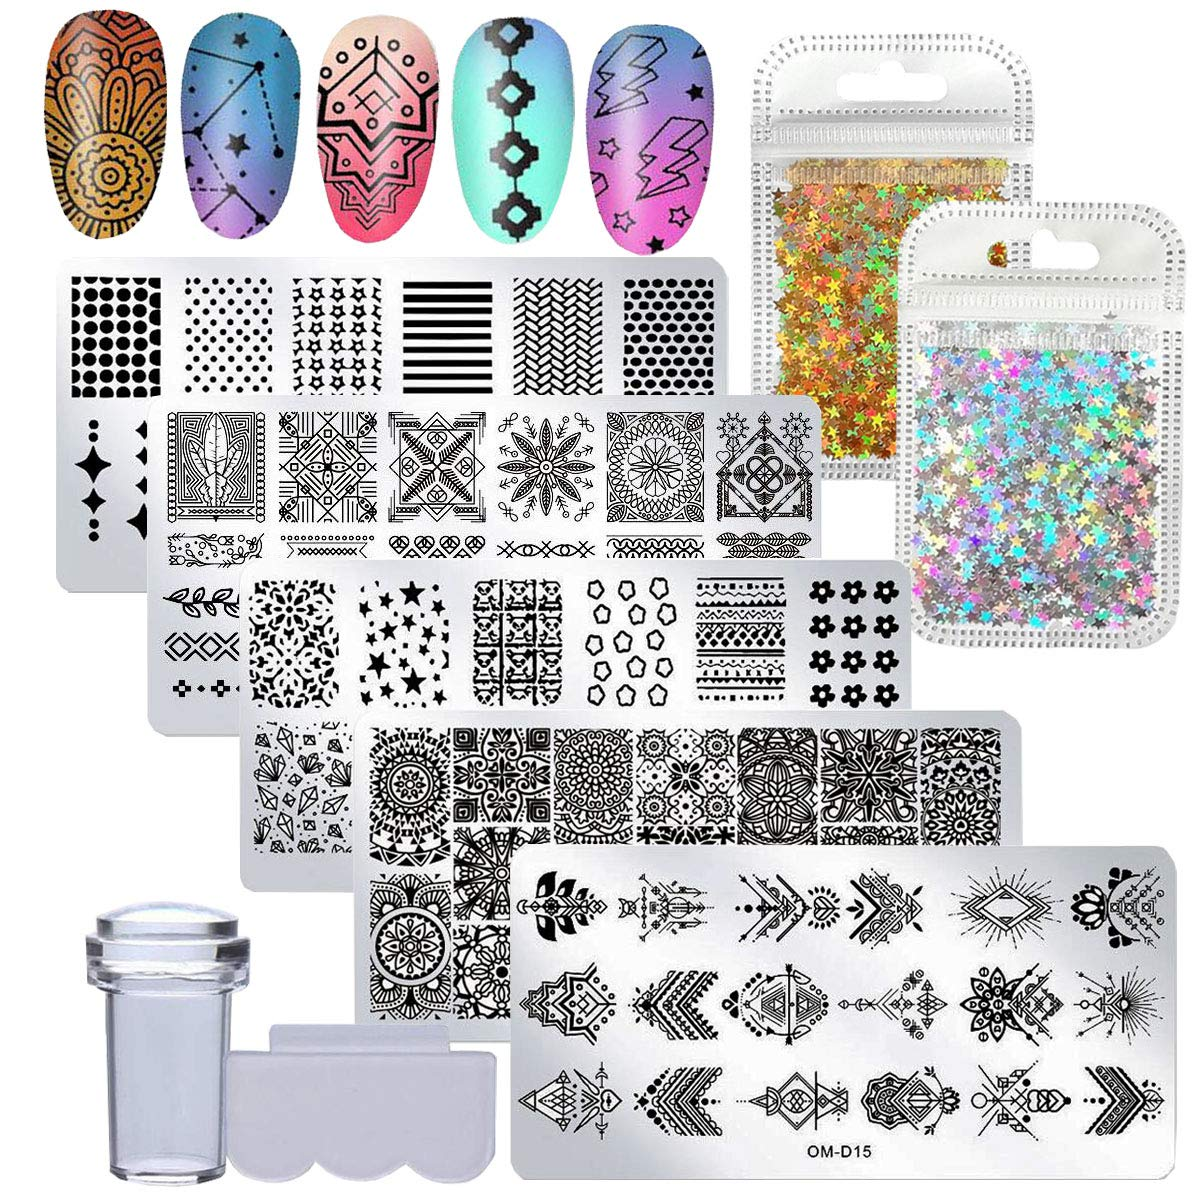 Nail Art Stamping Kit Geometric Flower Mandala Image Nail Stamping Plate Clear Nail Stamper Scaper with Holographic Gold Silver Star Nail Glitter Flakes(Star)